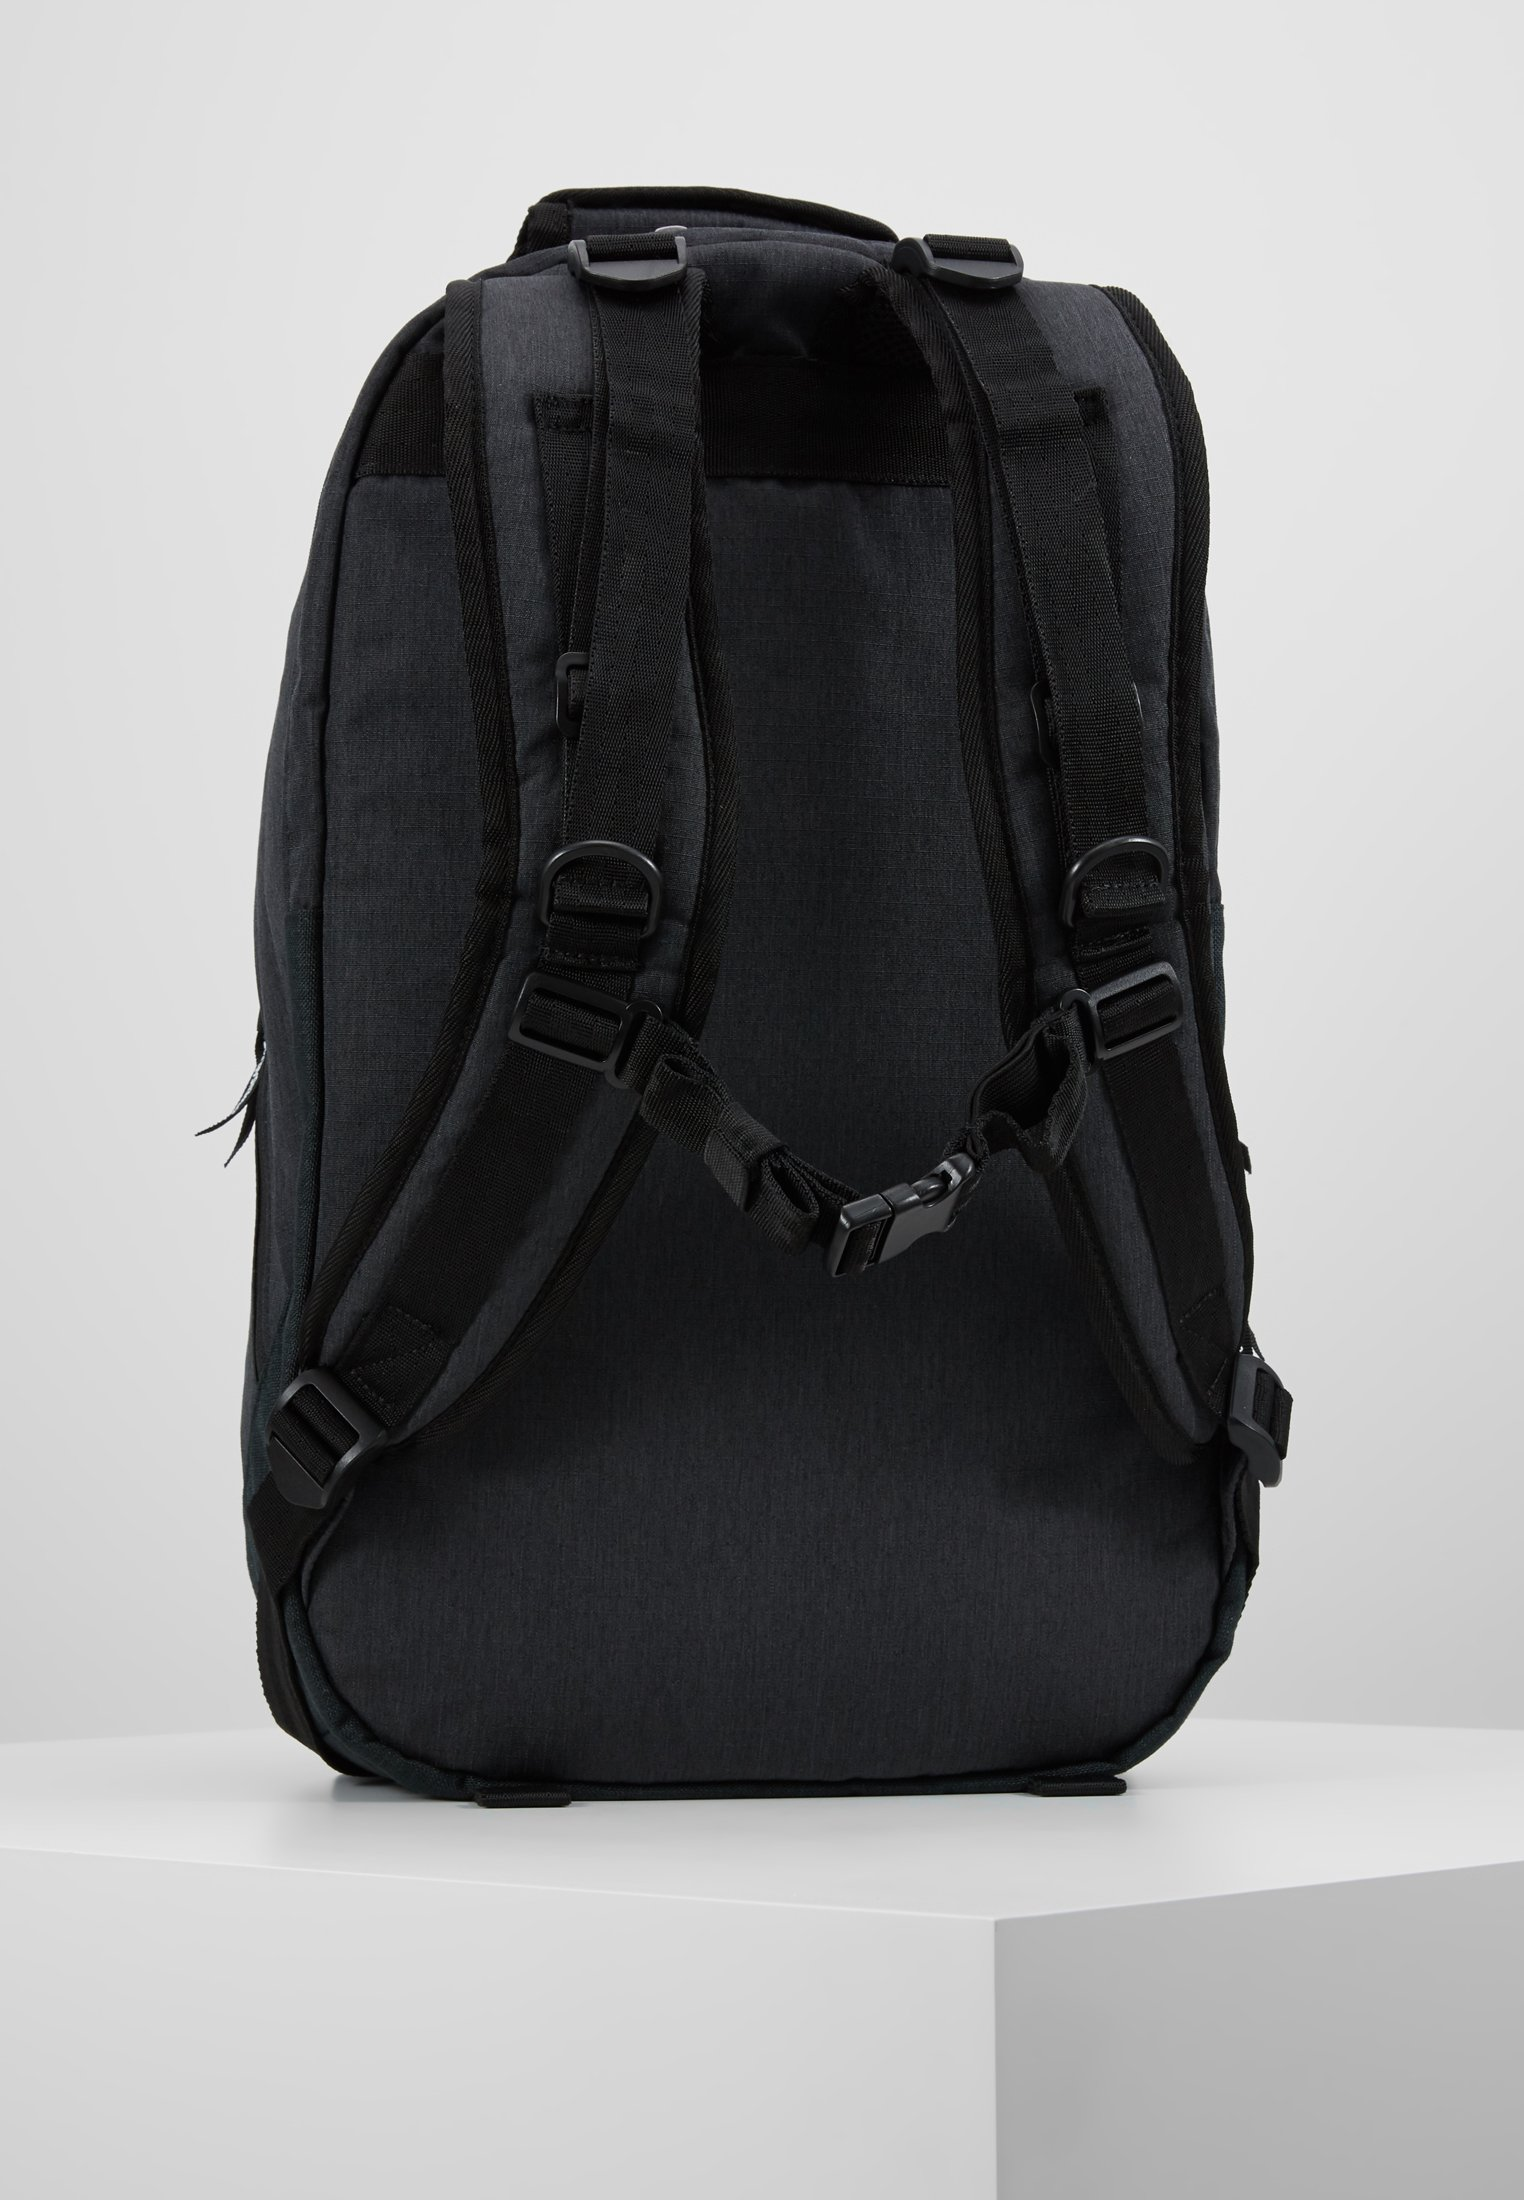 Indispensable Fusion Backpack - Sac À Dos Black